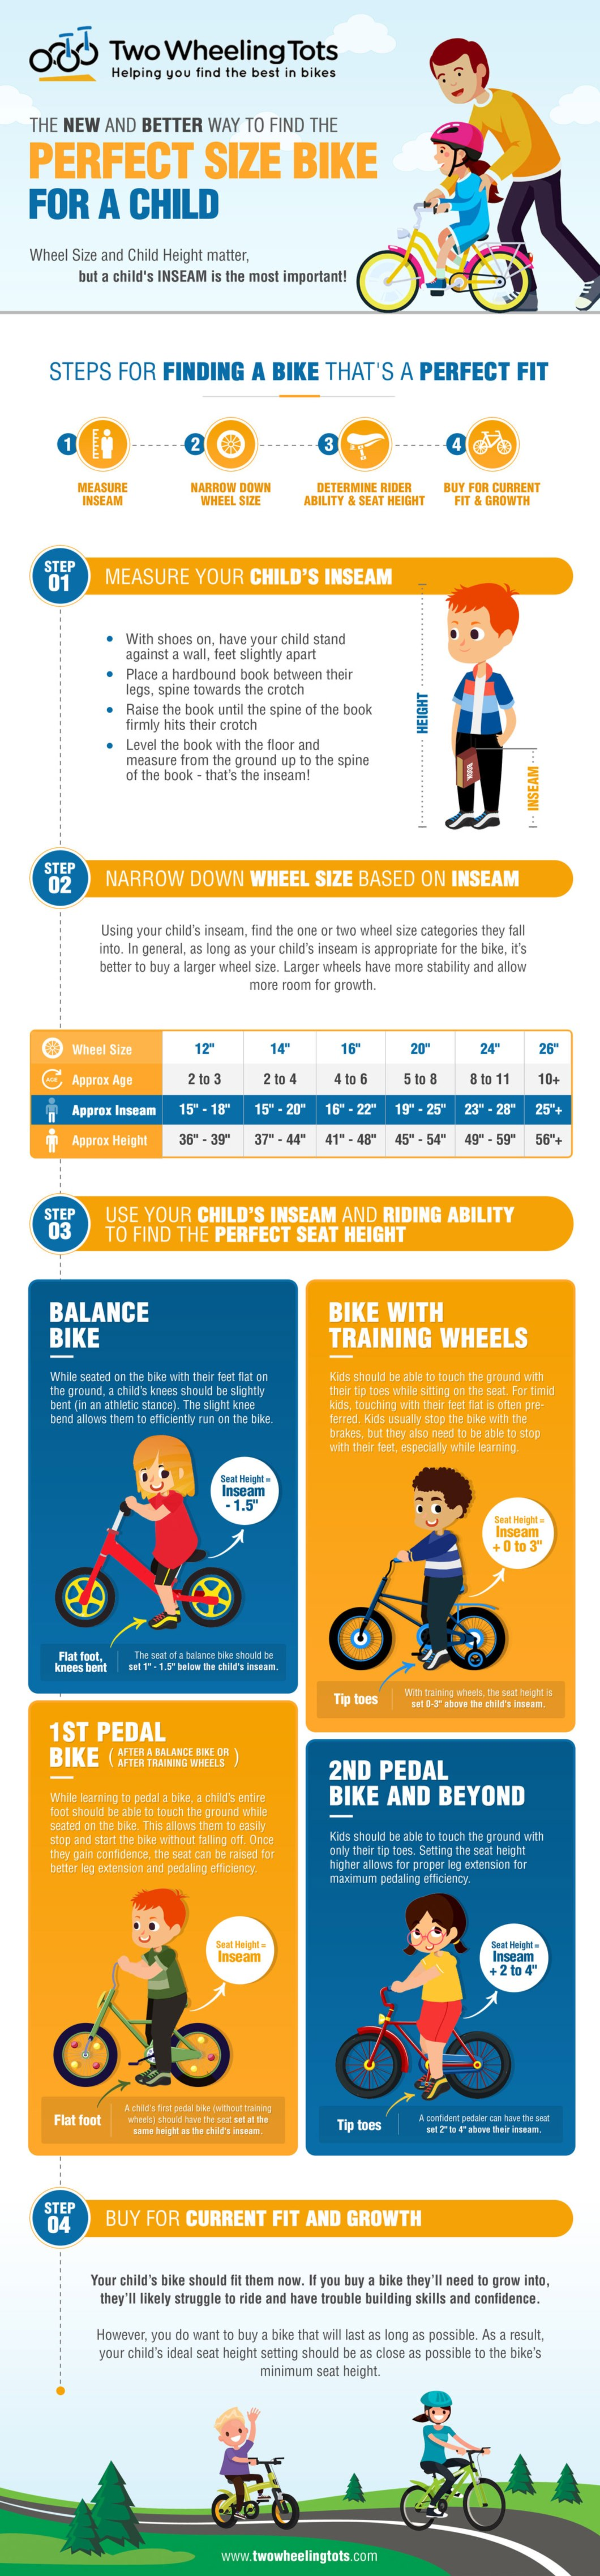 The 4-Step Method for Deciding the Perfect Bike Size for a Child - Infographic